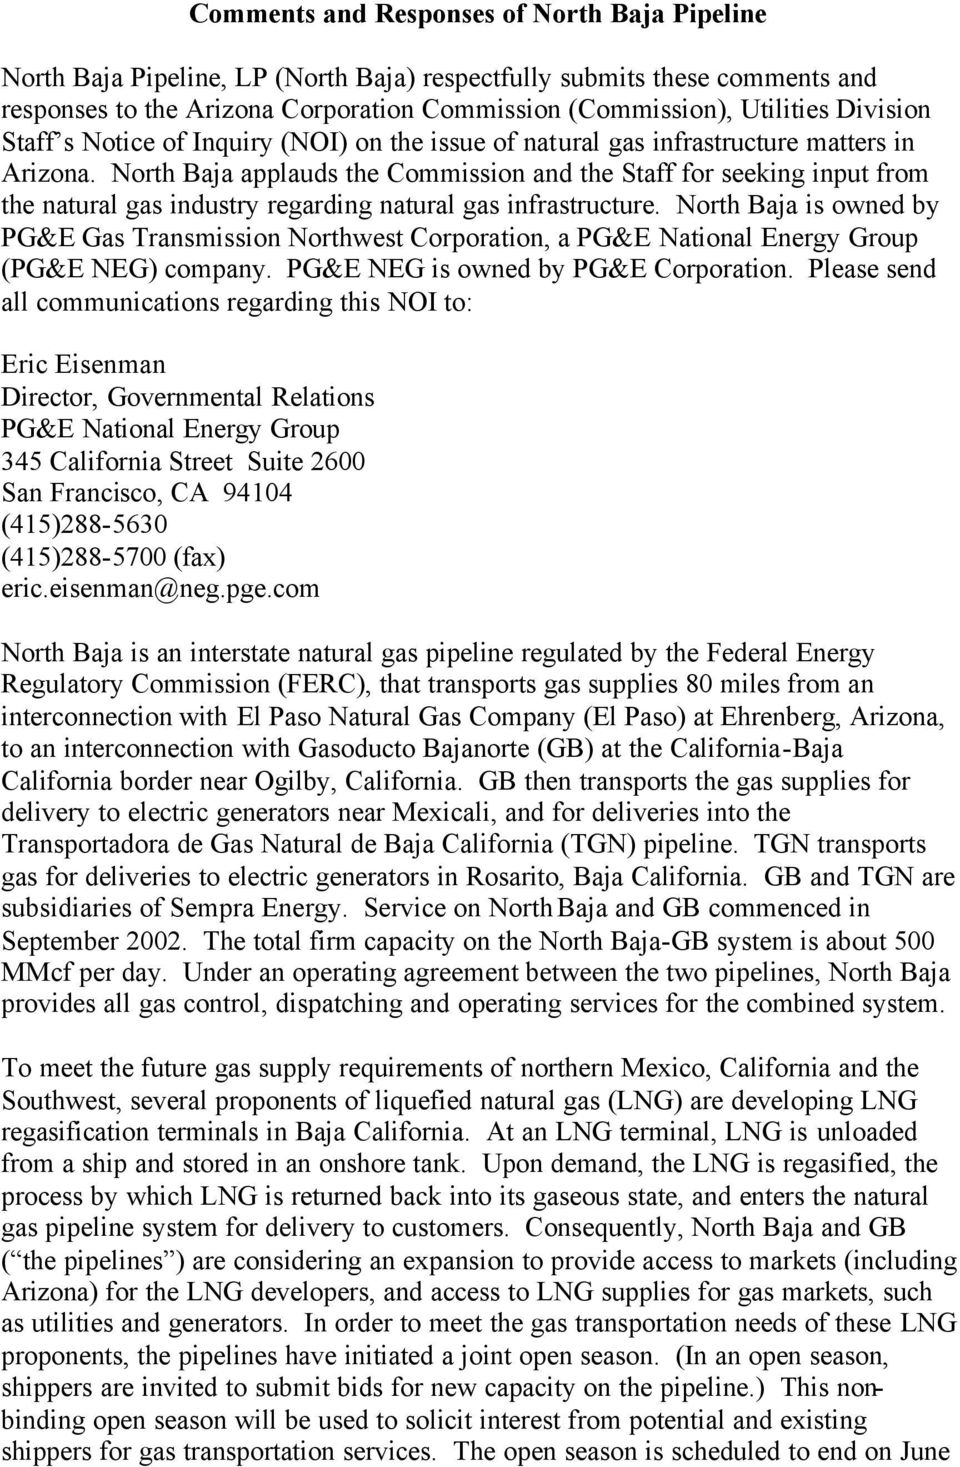 North Baja applauds the Commission and the Staff for seeking input from the natural gas industry regarding natural gas infrastructure.